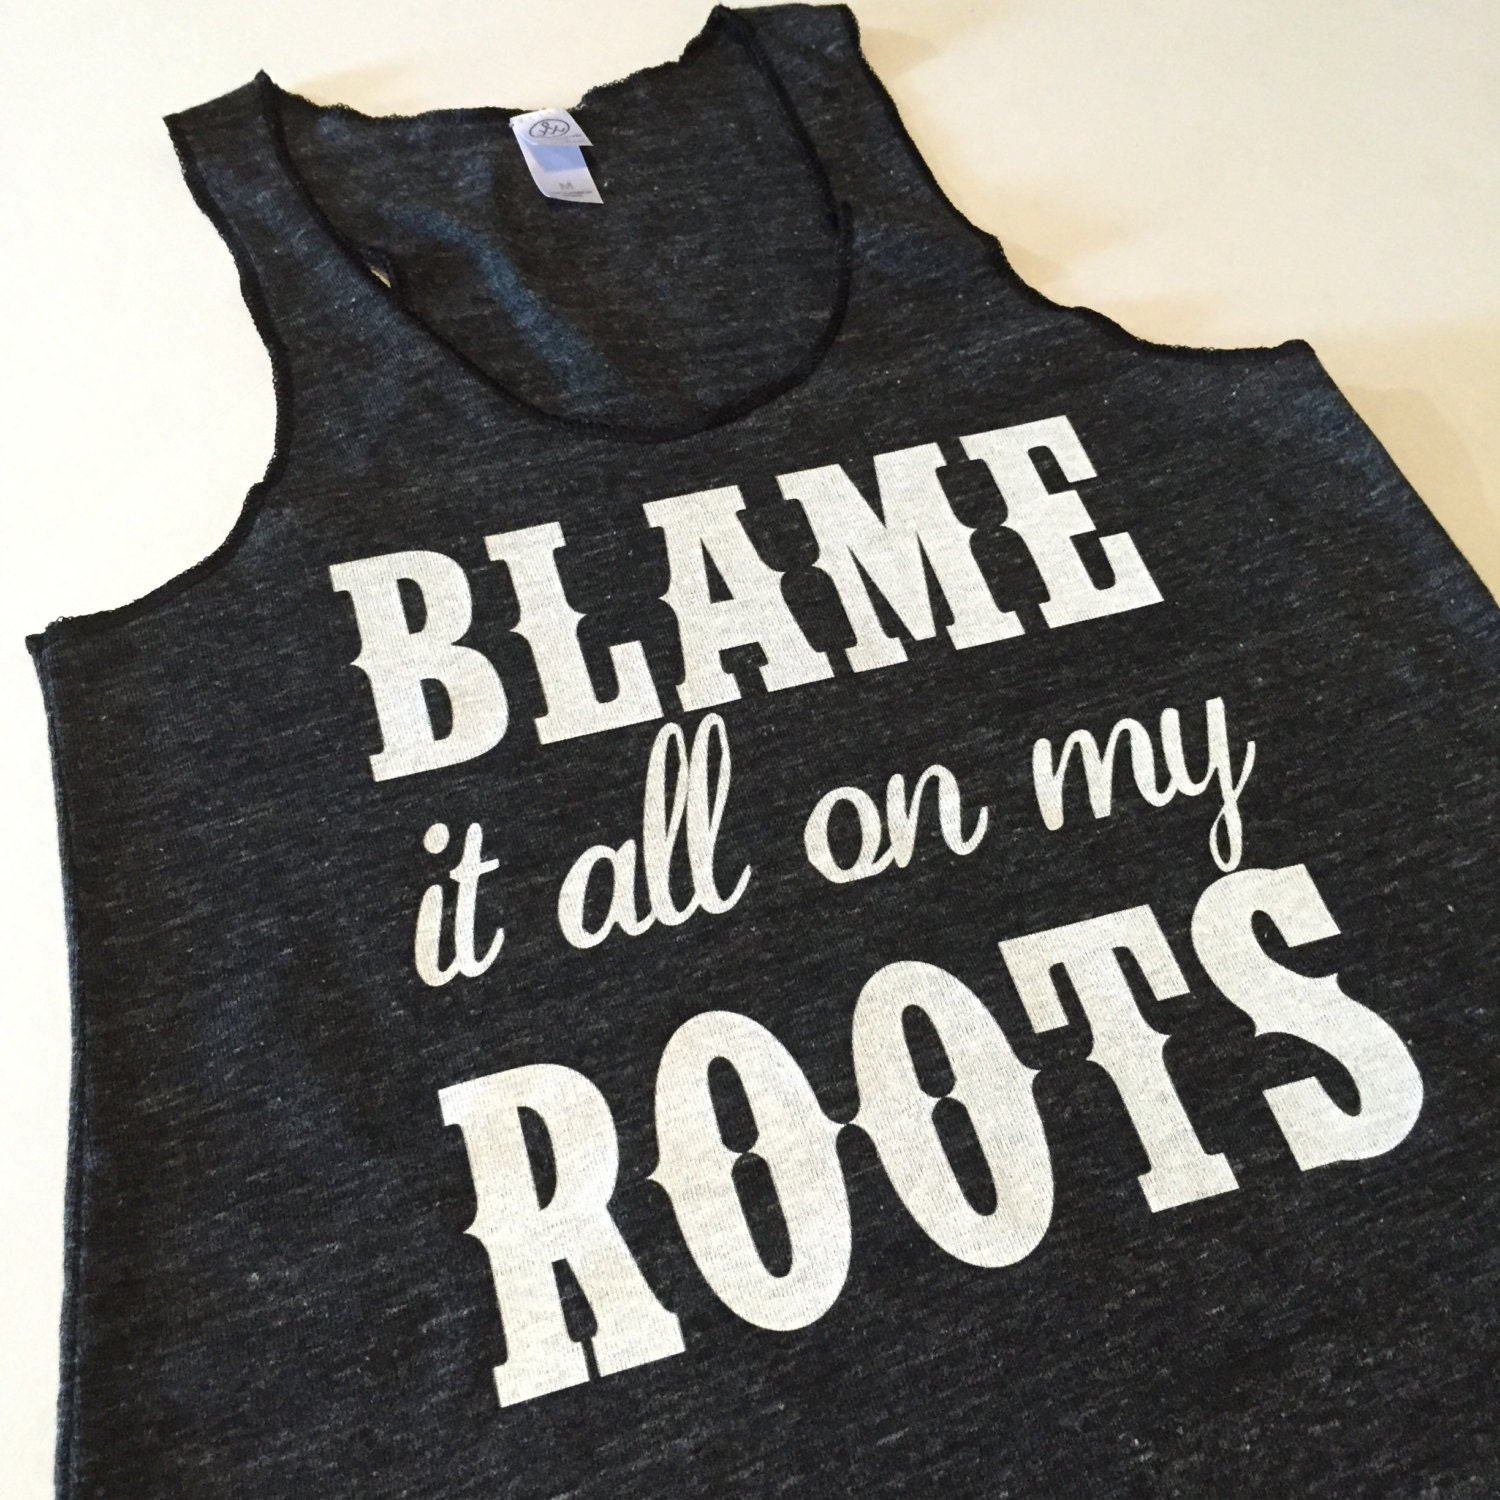 Garth Brooks Shirt Tank Blame It All On My Roots By